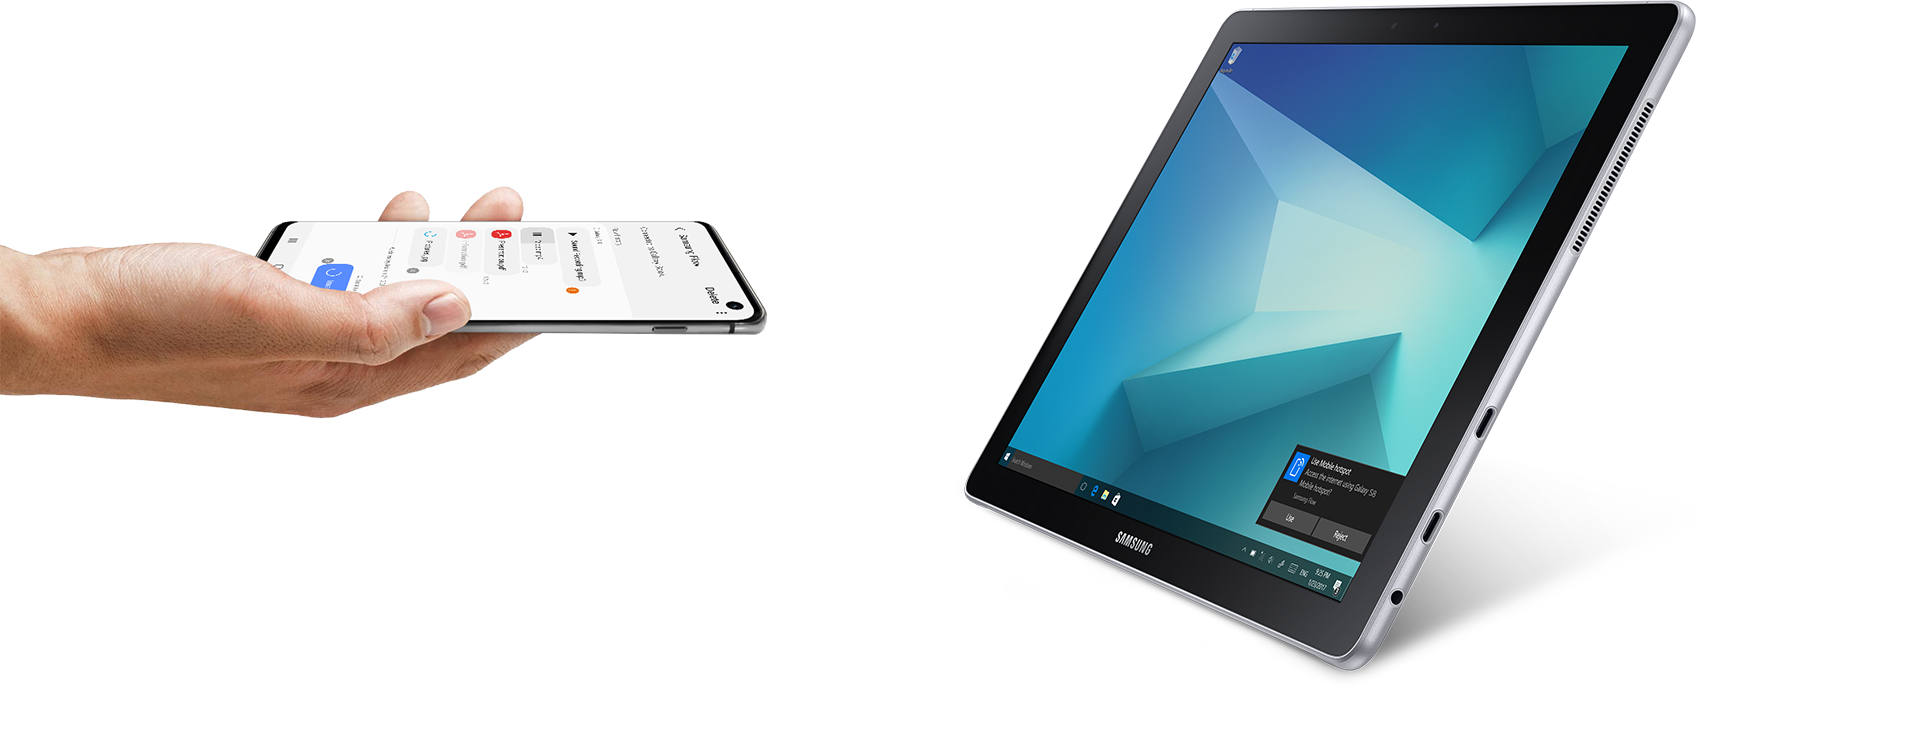 images How to Sync Samsung Galaxy Tab with iTunes